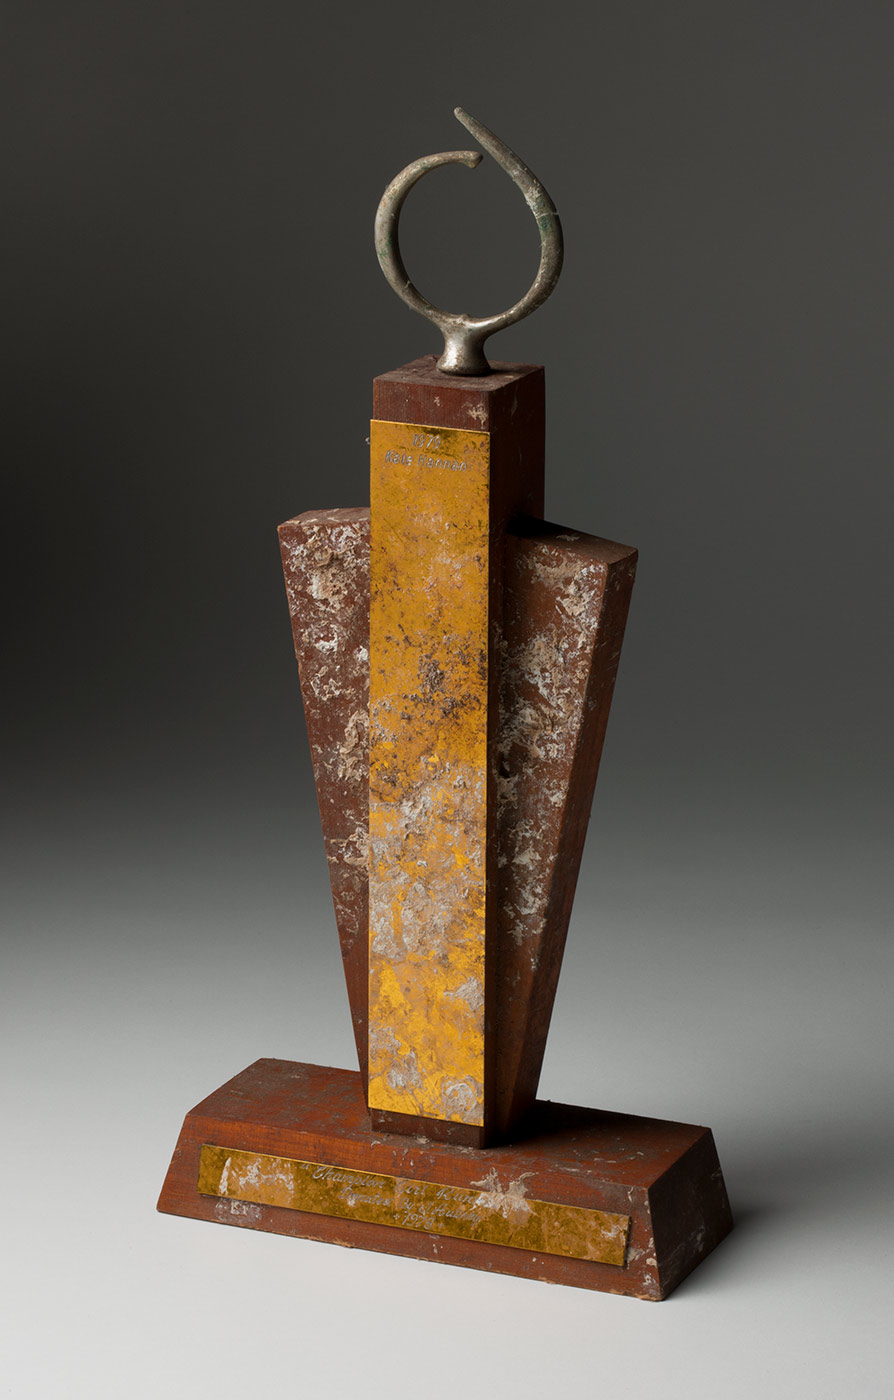 A wooden and metal trophy with two half circles on top. The surface is streaked with bird droppings. - click to view larger image